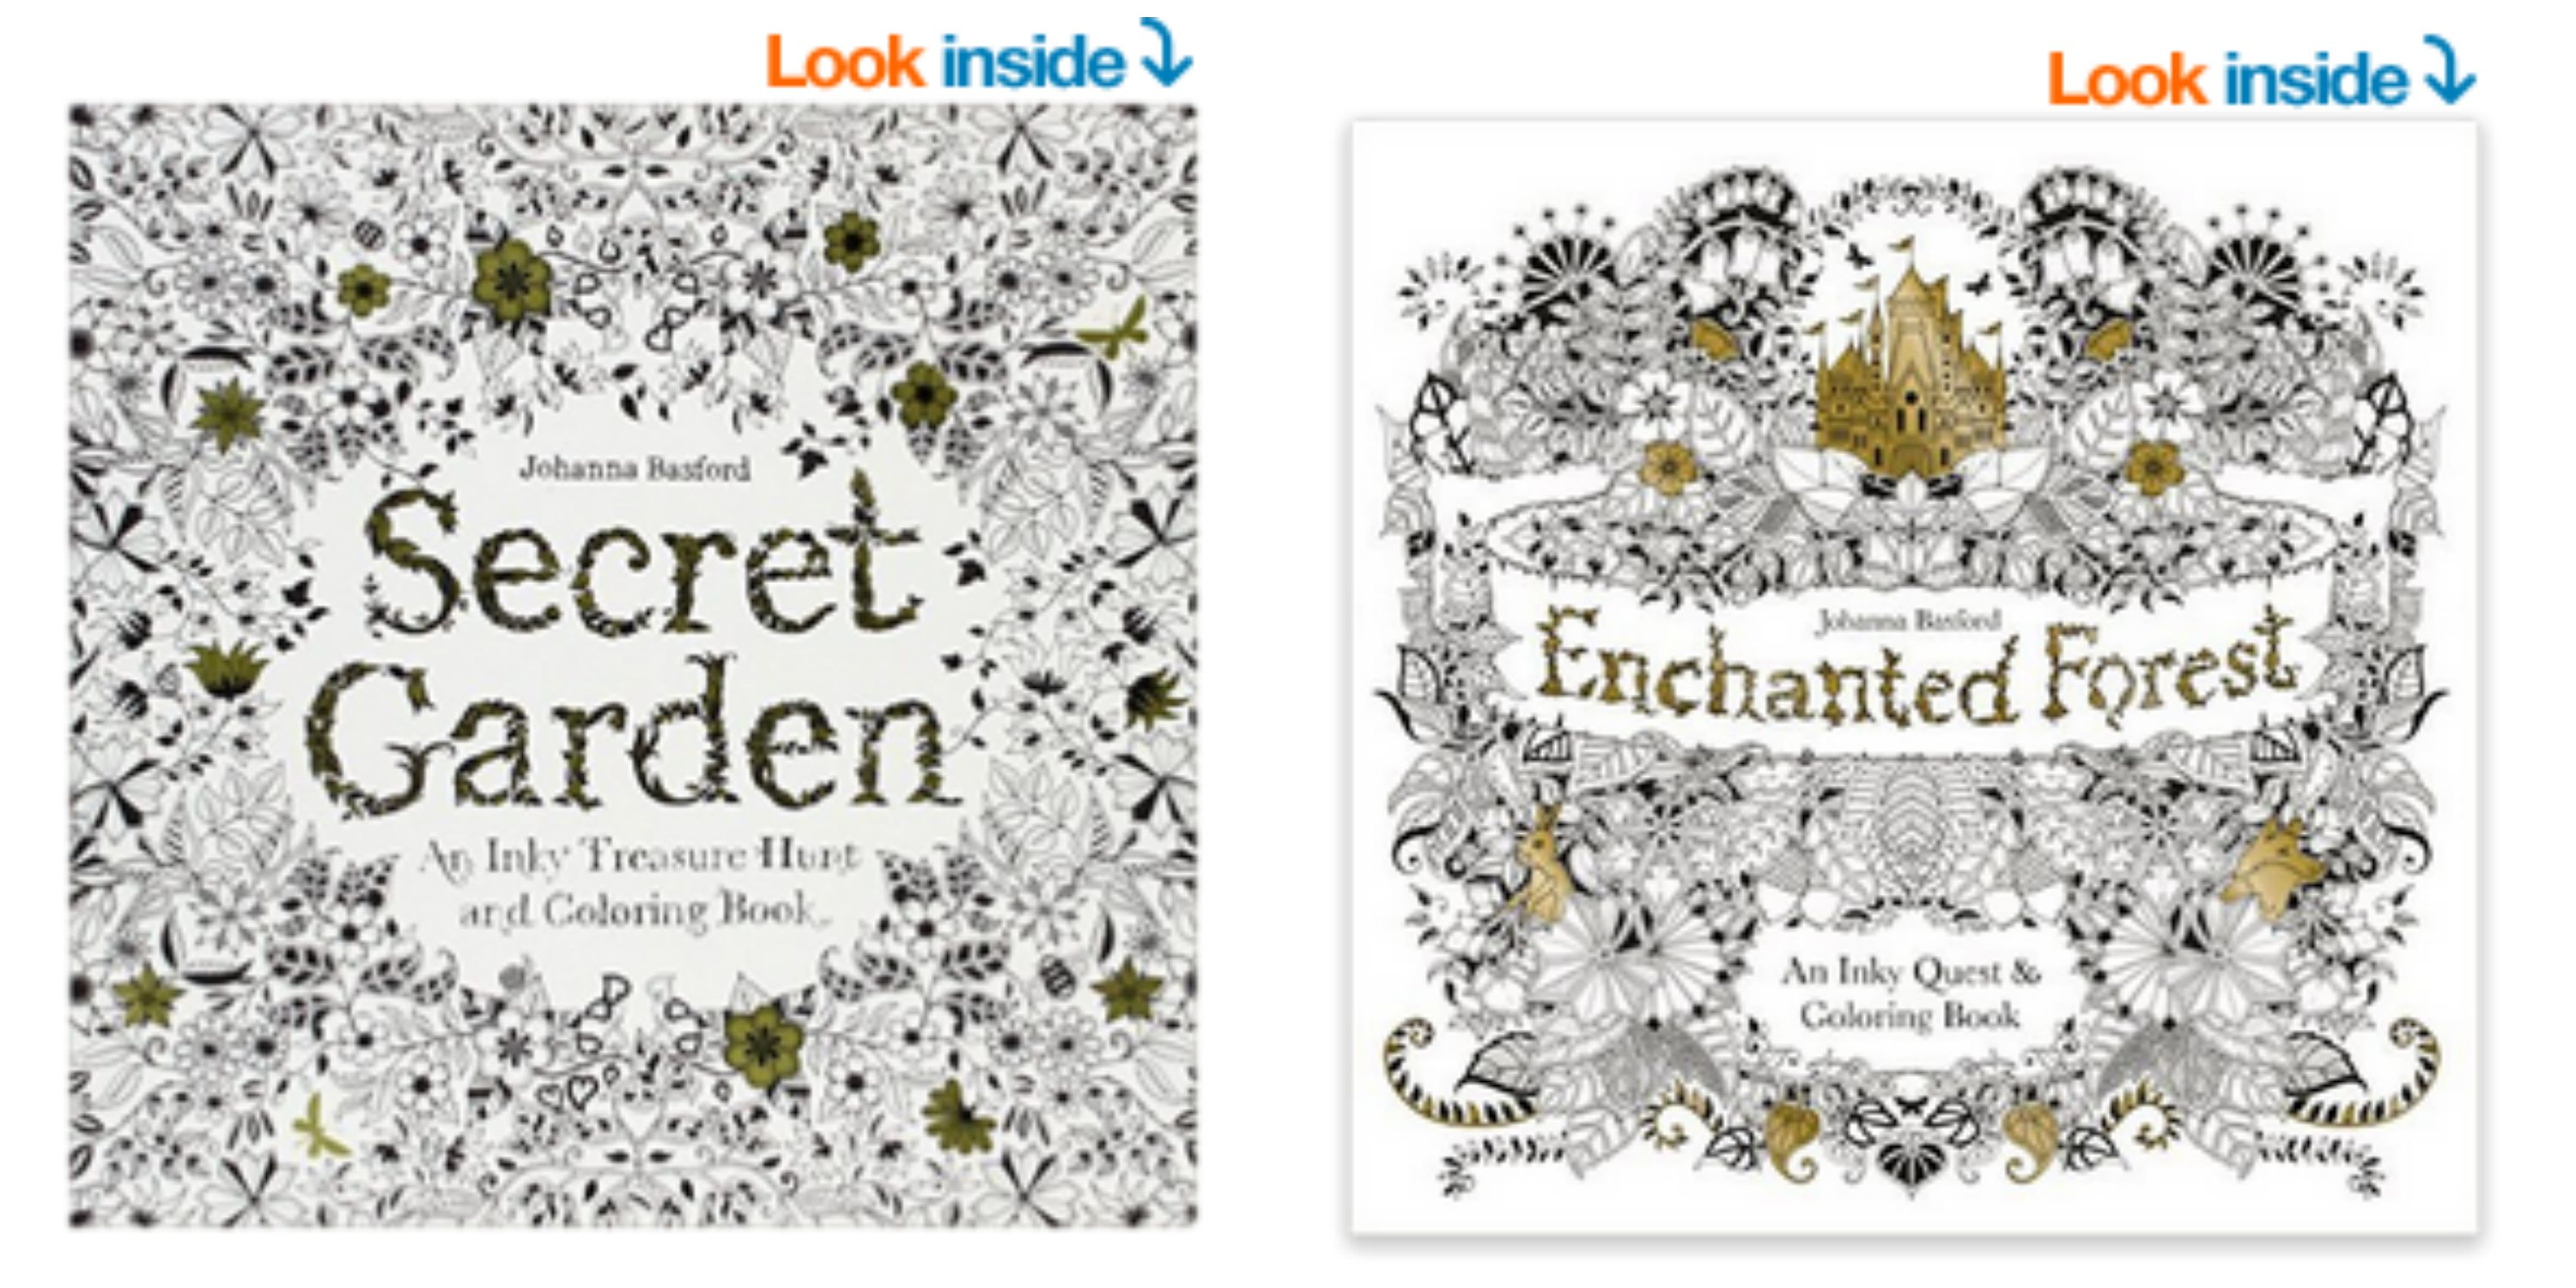 Picmonkey Collage Best Coloring Books Stock Amazon Enchanted Forest An Inky Quest